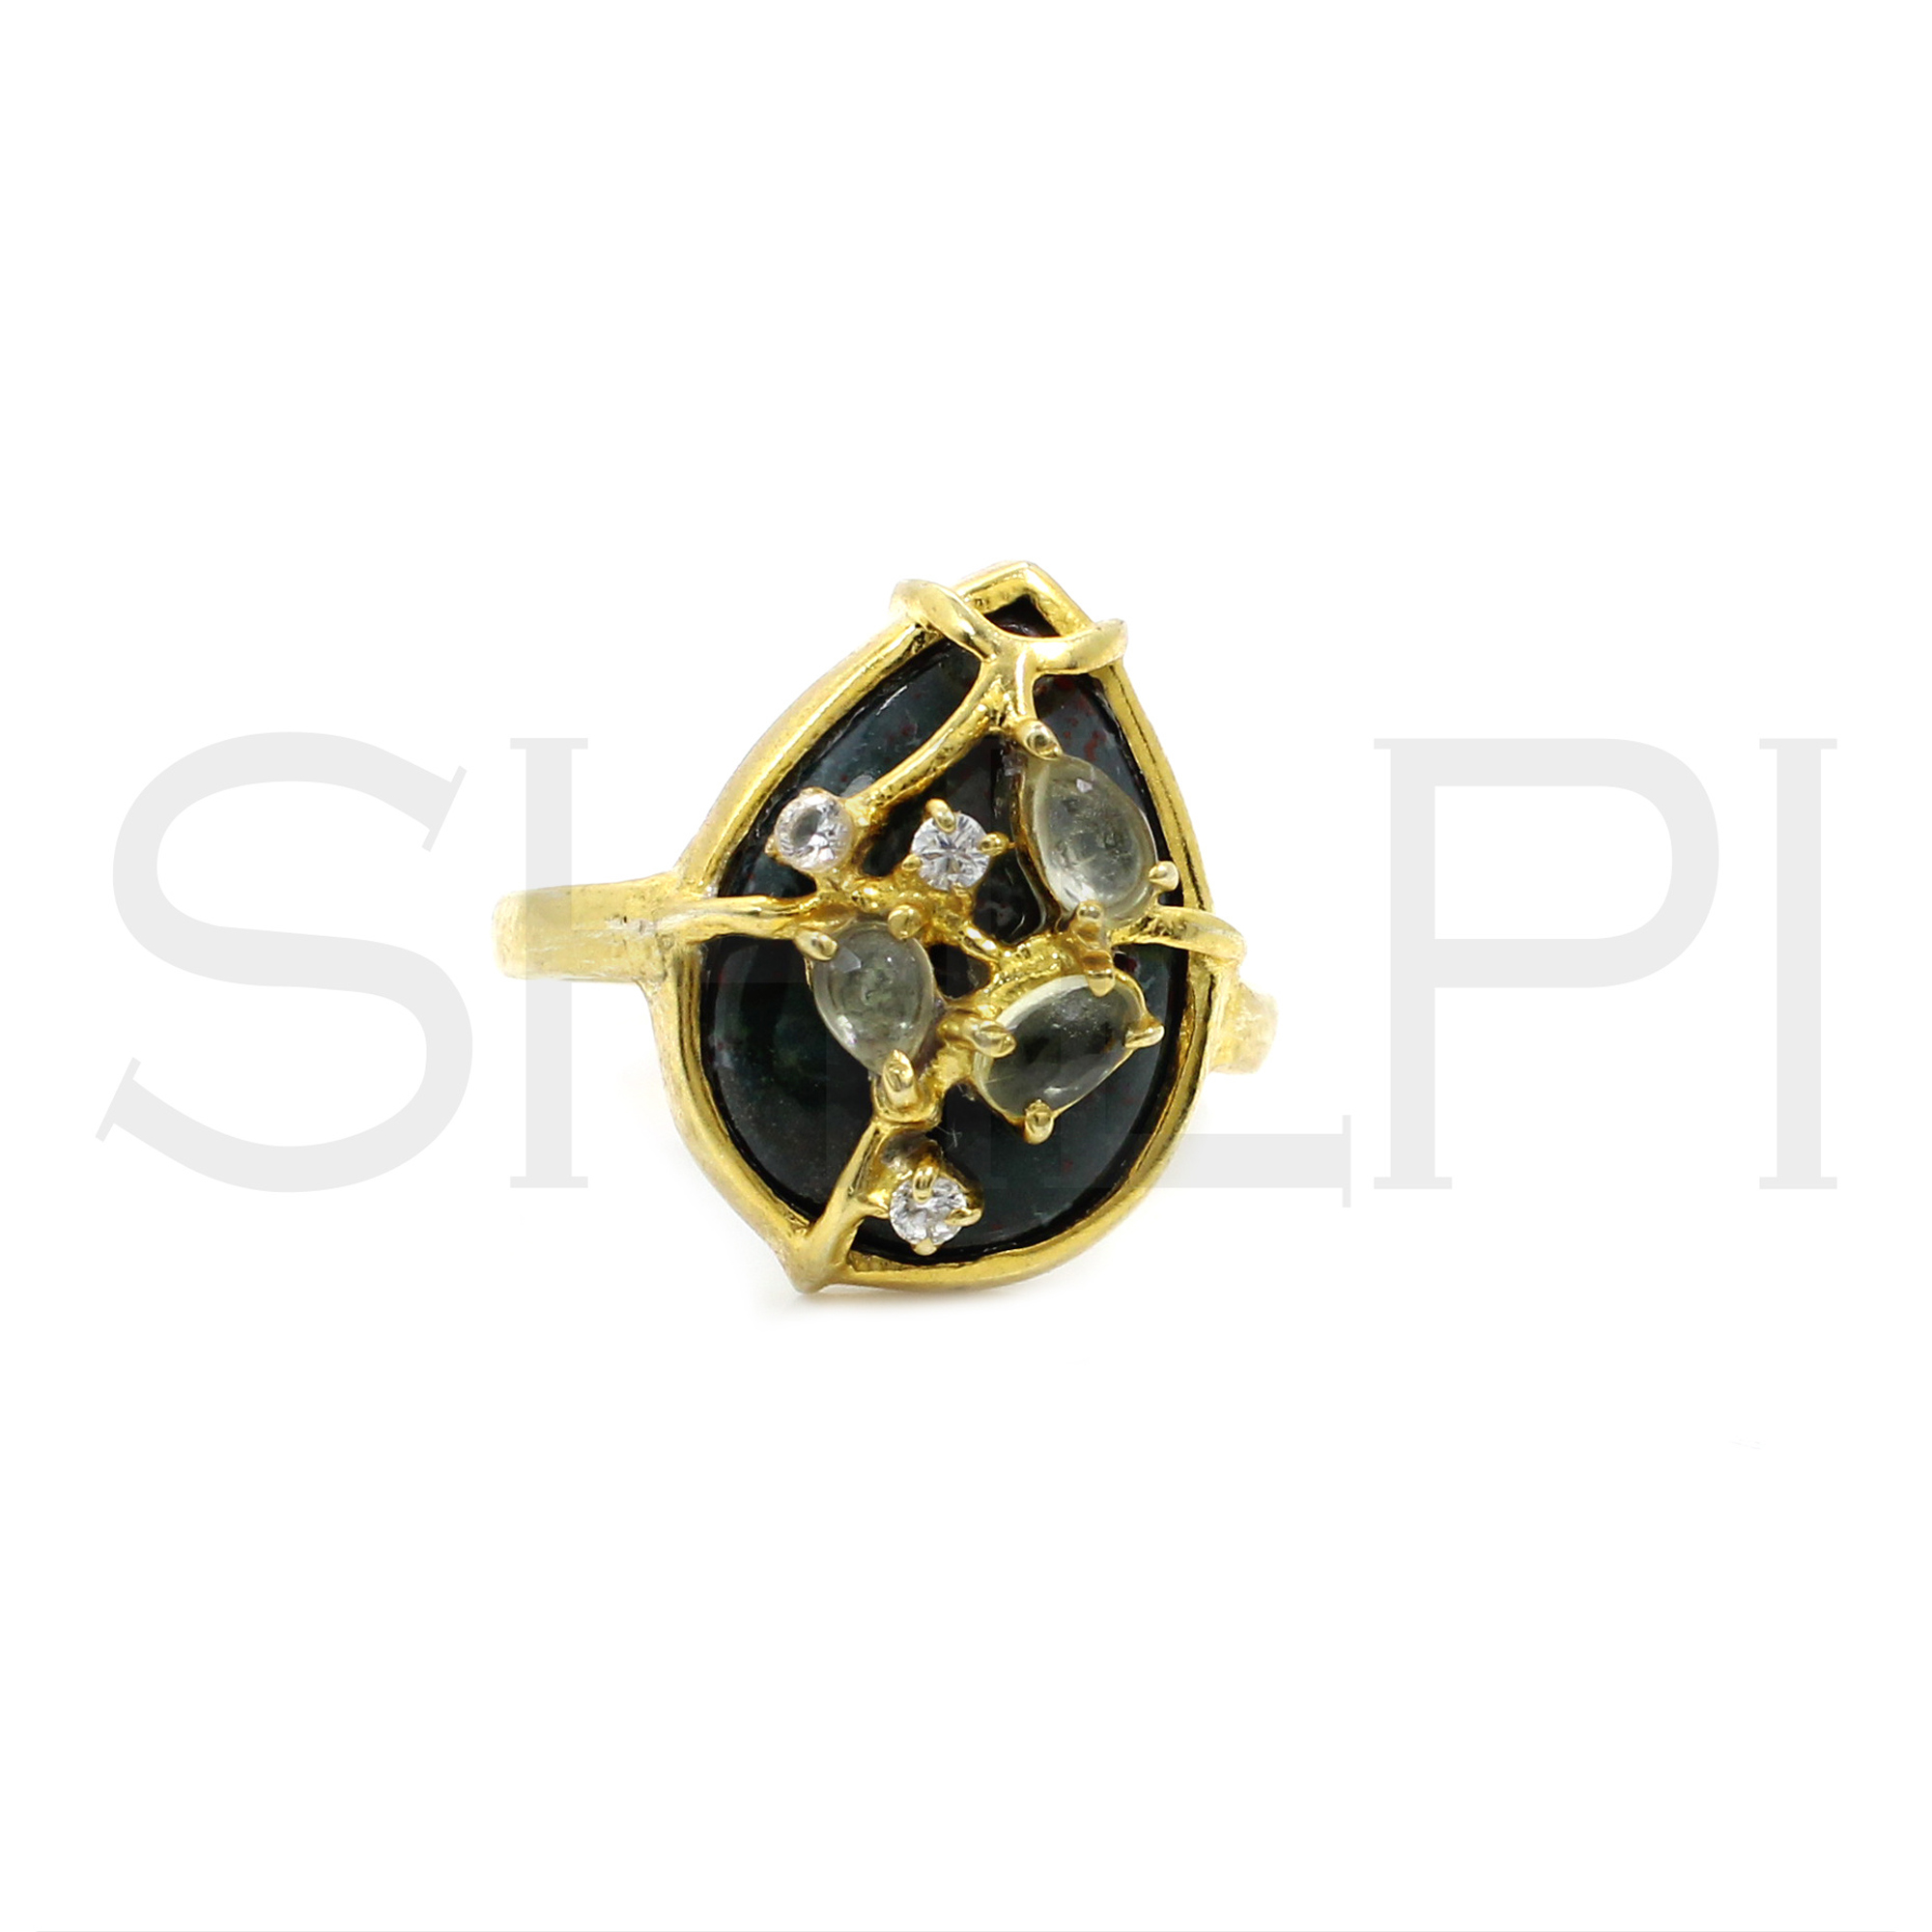 Blood Agate With Overlapping Small Stone Handcrafted Gold Plated Ring